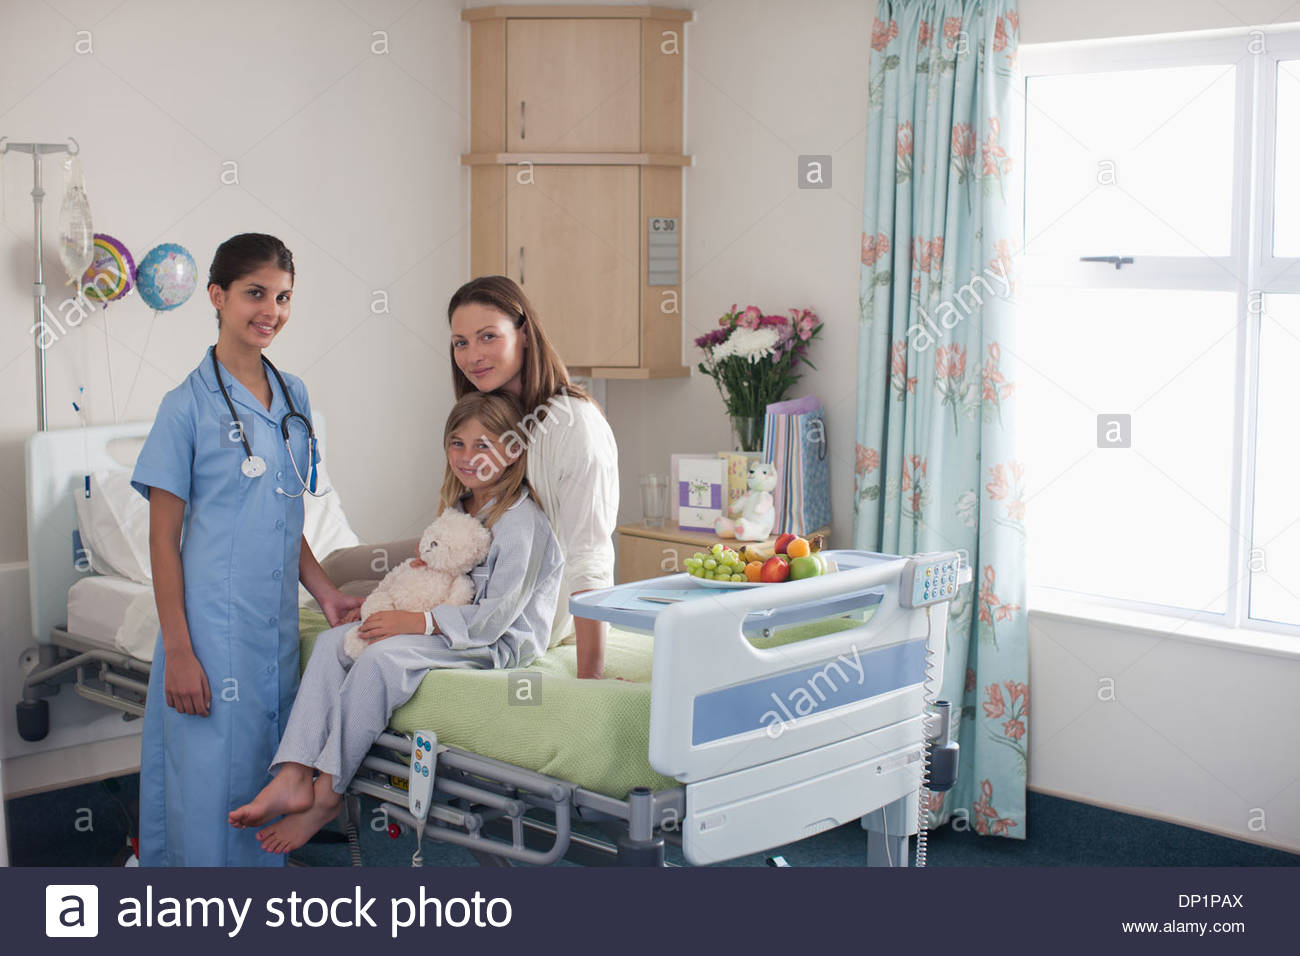 Nurse in childrenÂ's hospital with girl patient and mother - Stock Image